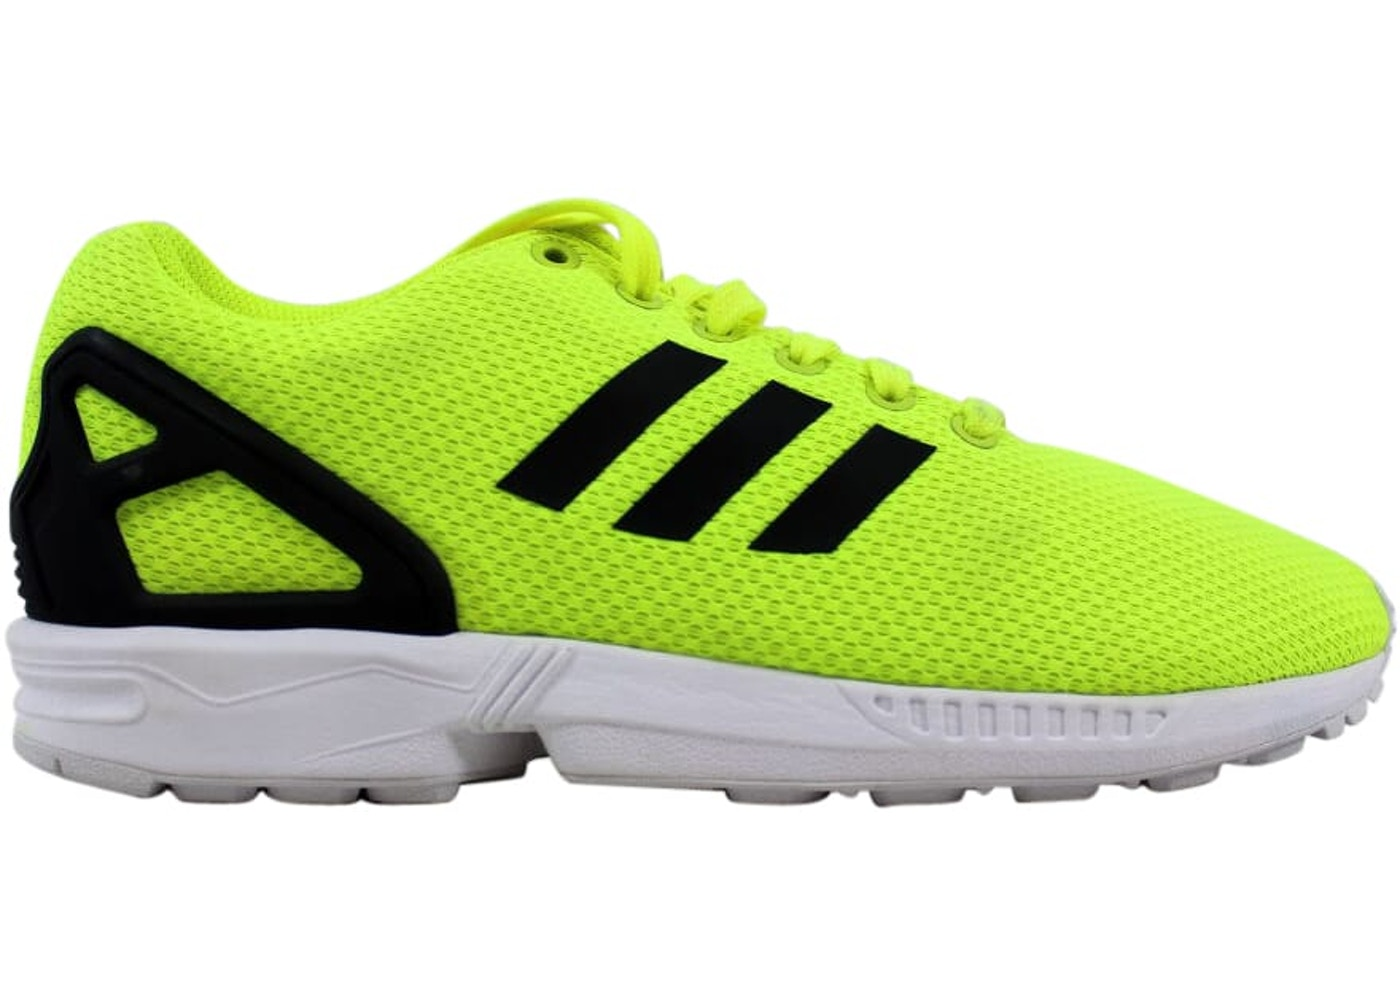 quality design a2dc9 92a5b adidas ZX Flux Electric Yellow